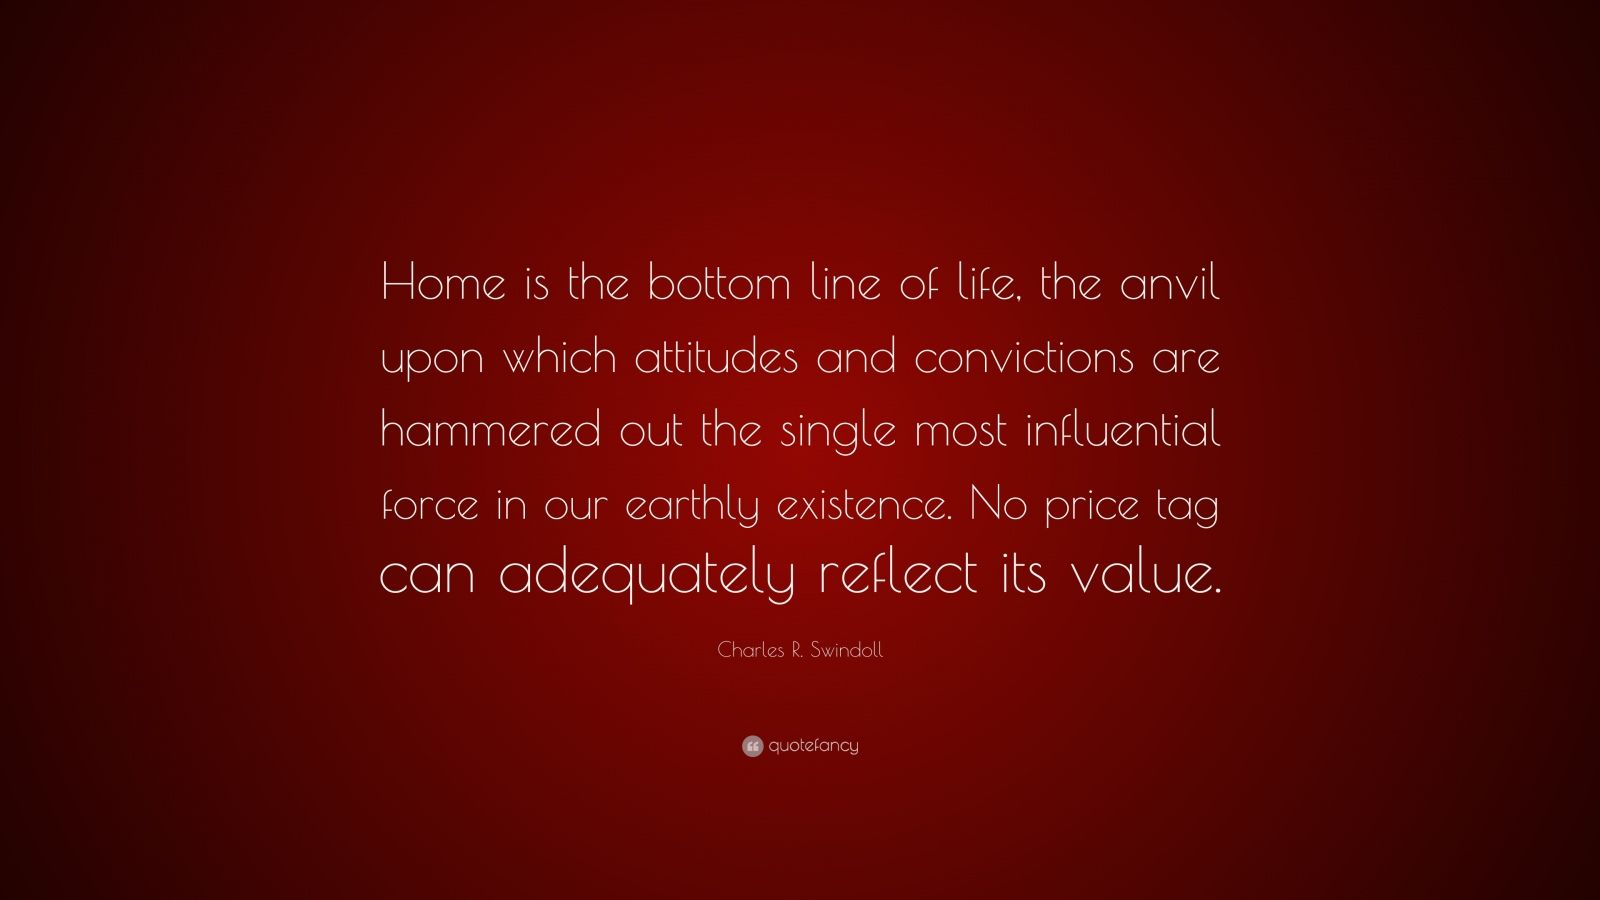 """Charles R. Swindoll Quote: """"Home is the bottom line of life, the anvil upon which attitudes and convictions are hammered out the single most influential force in our earthly existence. No price tag can adequately reflect its value."""""""